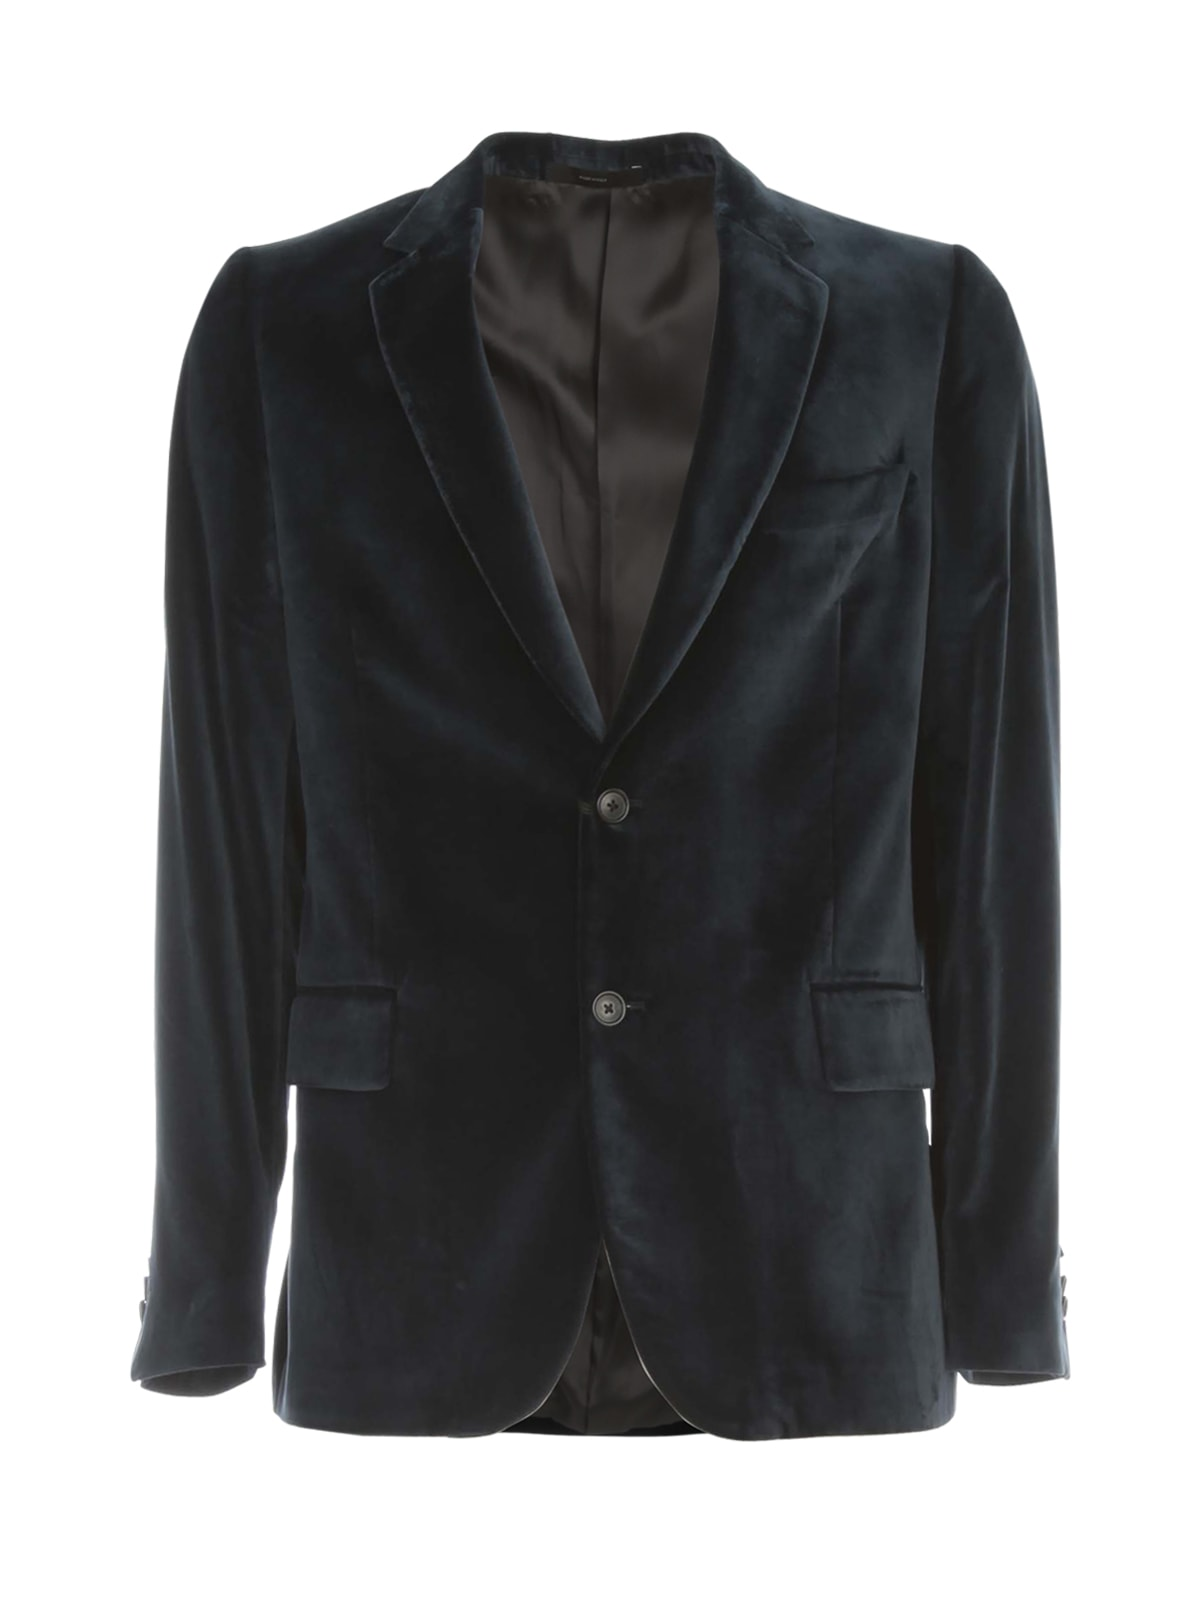 Paul Smith Tailored 2 Buttons Jacket